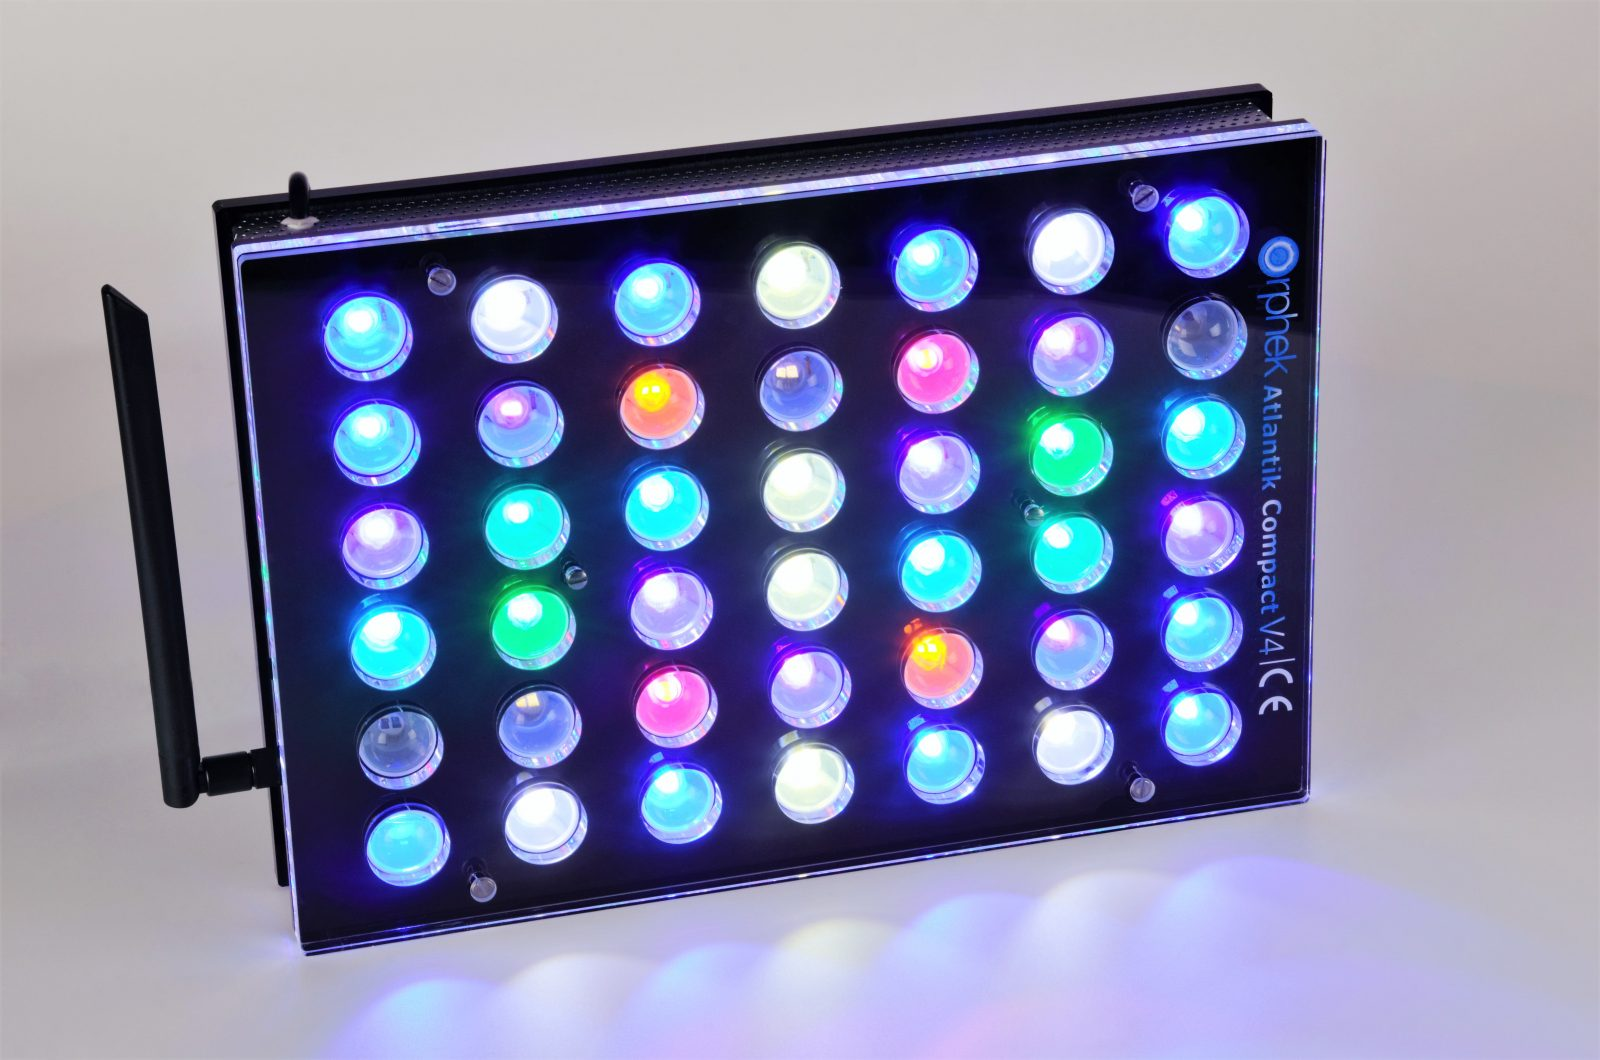 Orphek-Aquarium-LED-Lighting-Atlantik-کمپیکٹ - V4-روشنی- چینل 1 + 2 + 3 + 4